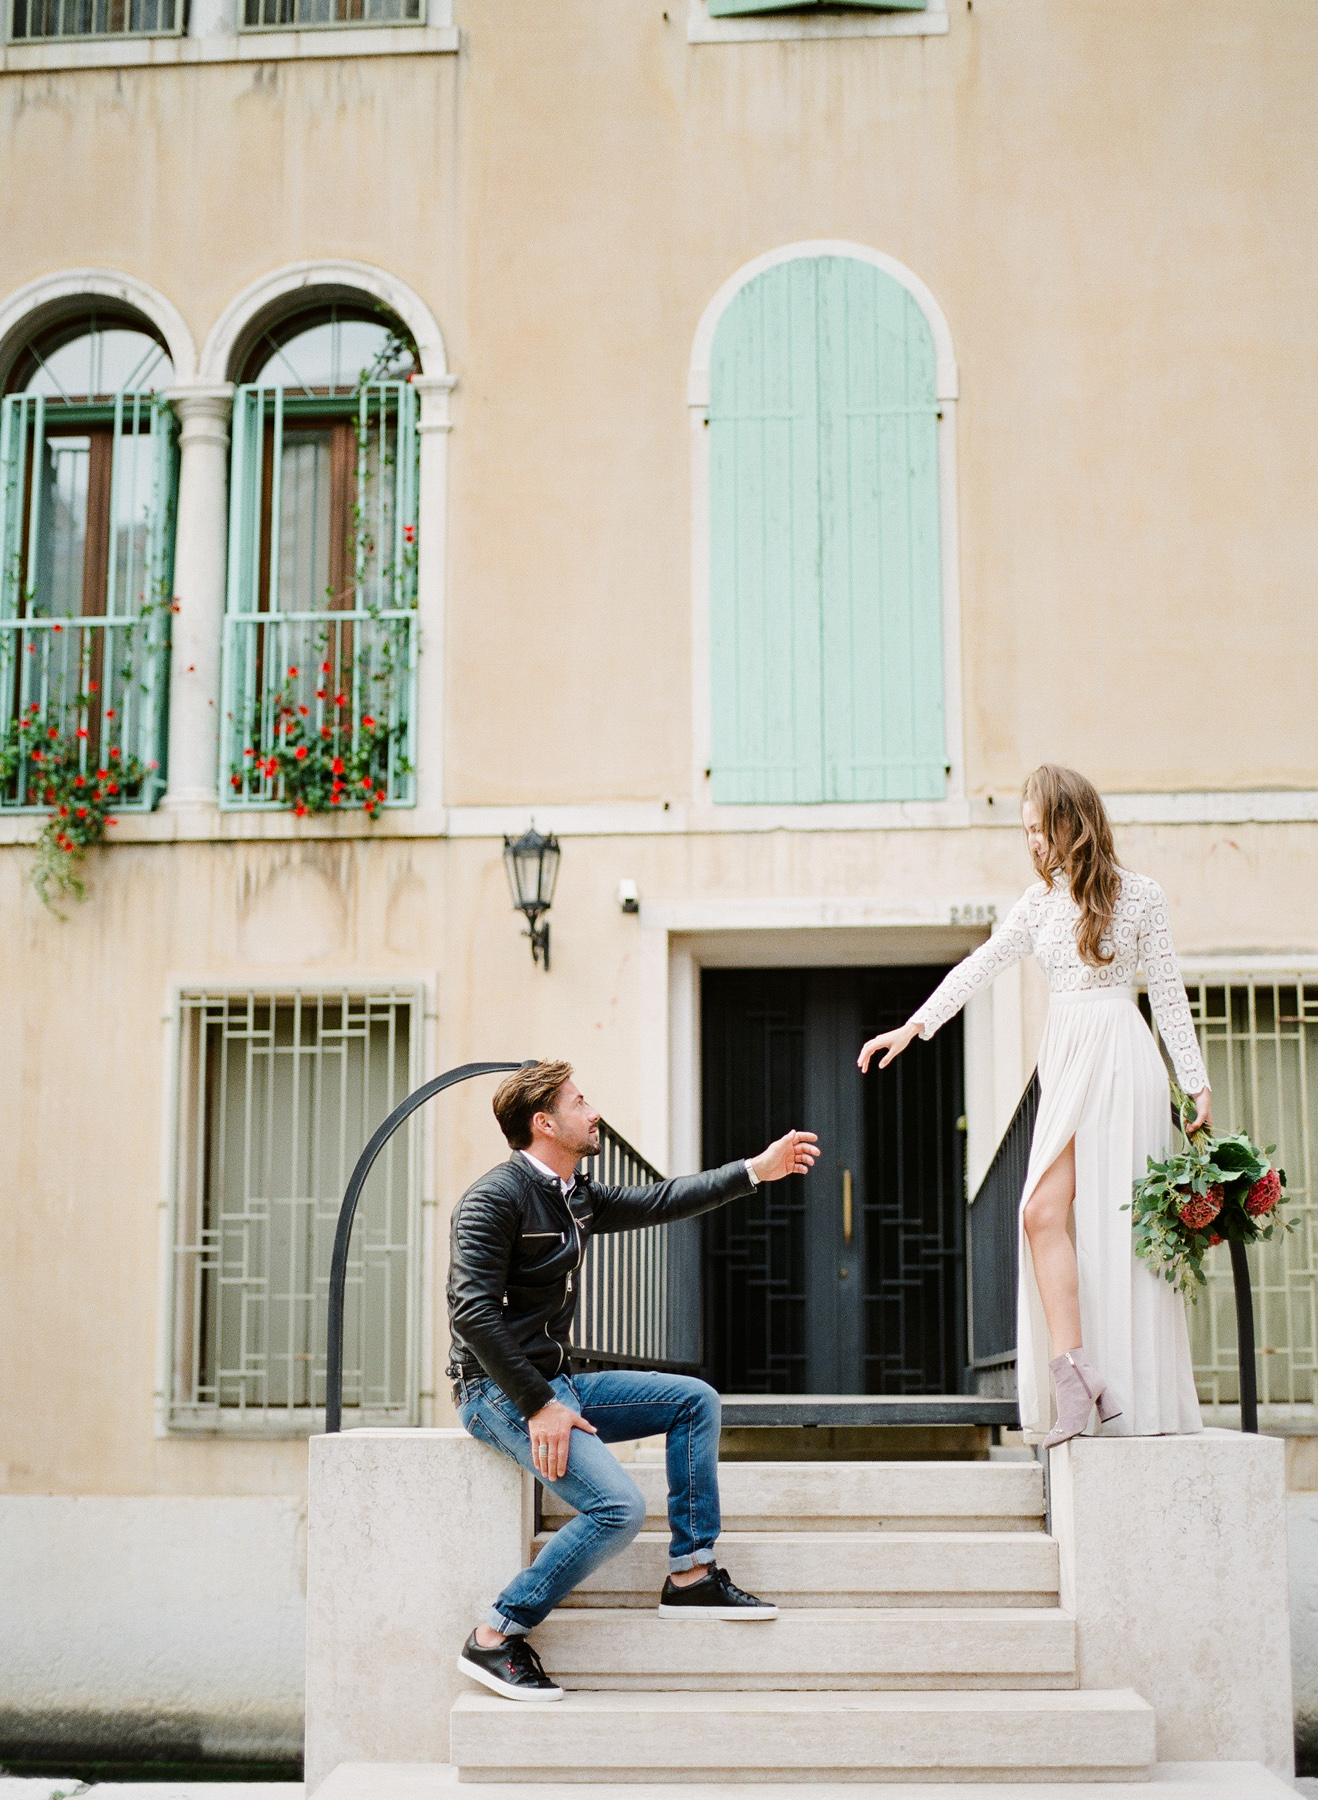 27 Venice Italy Photographer Wedding.jpg